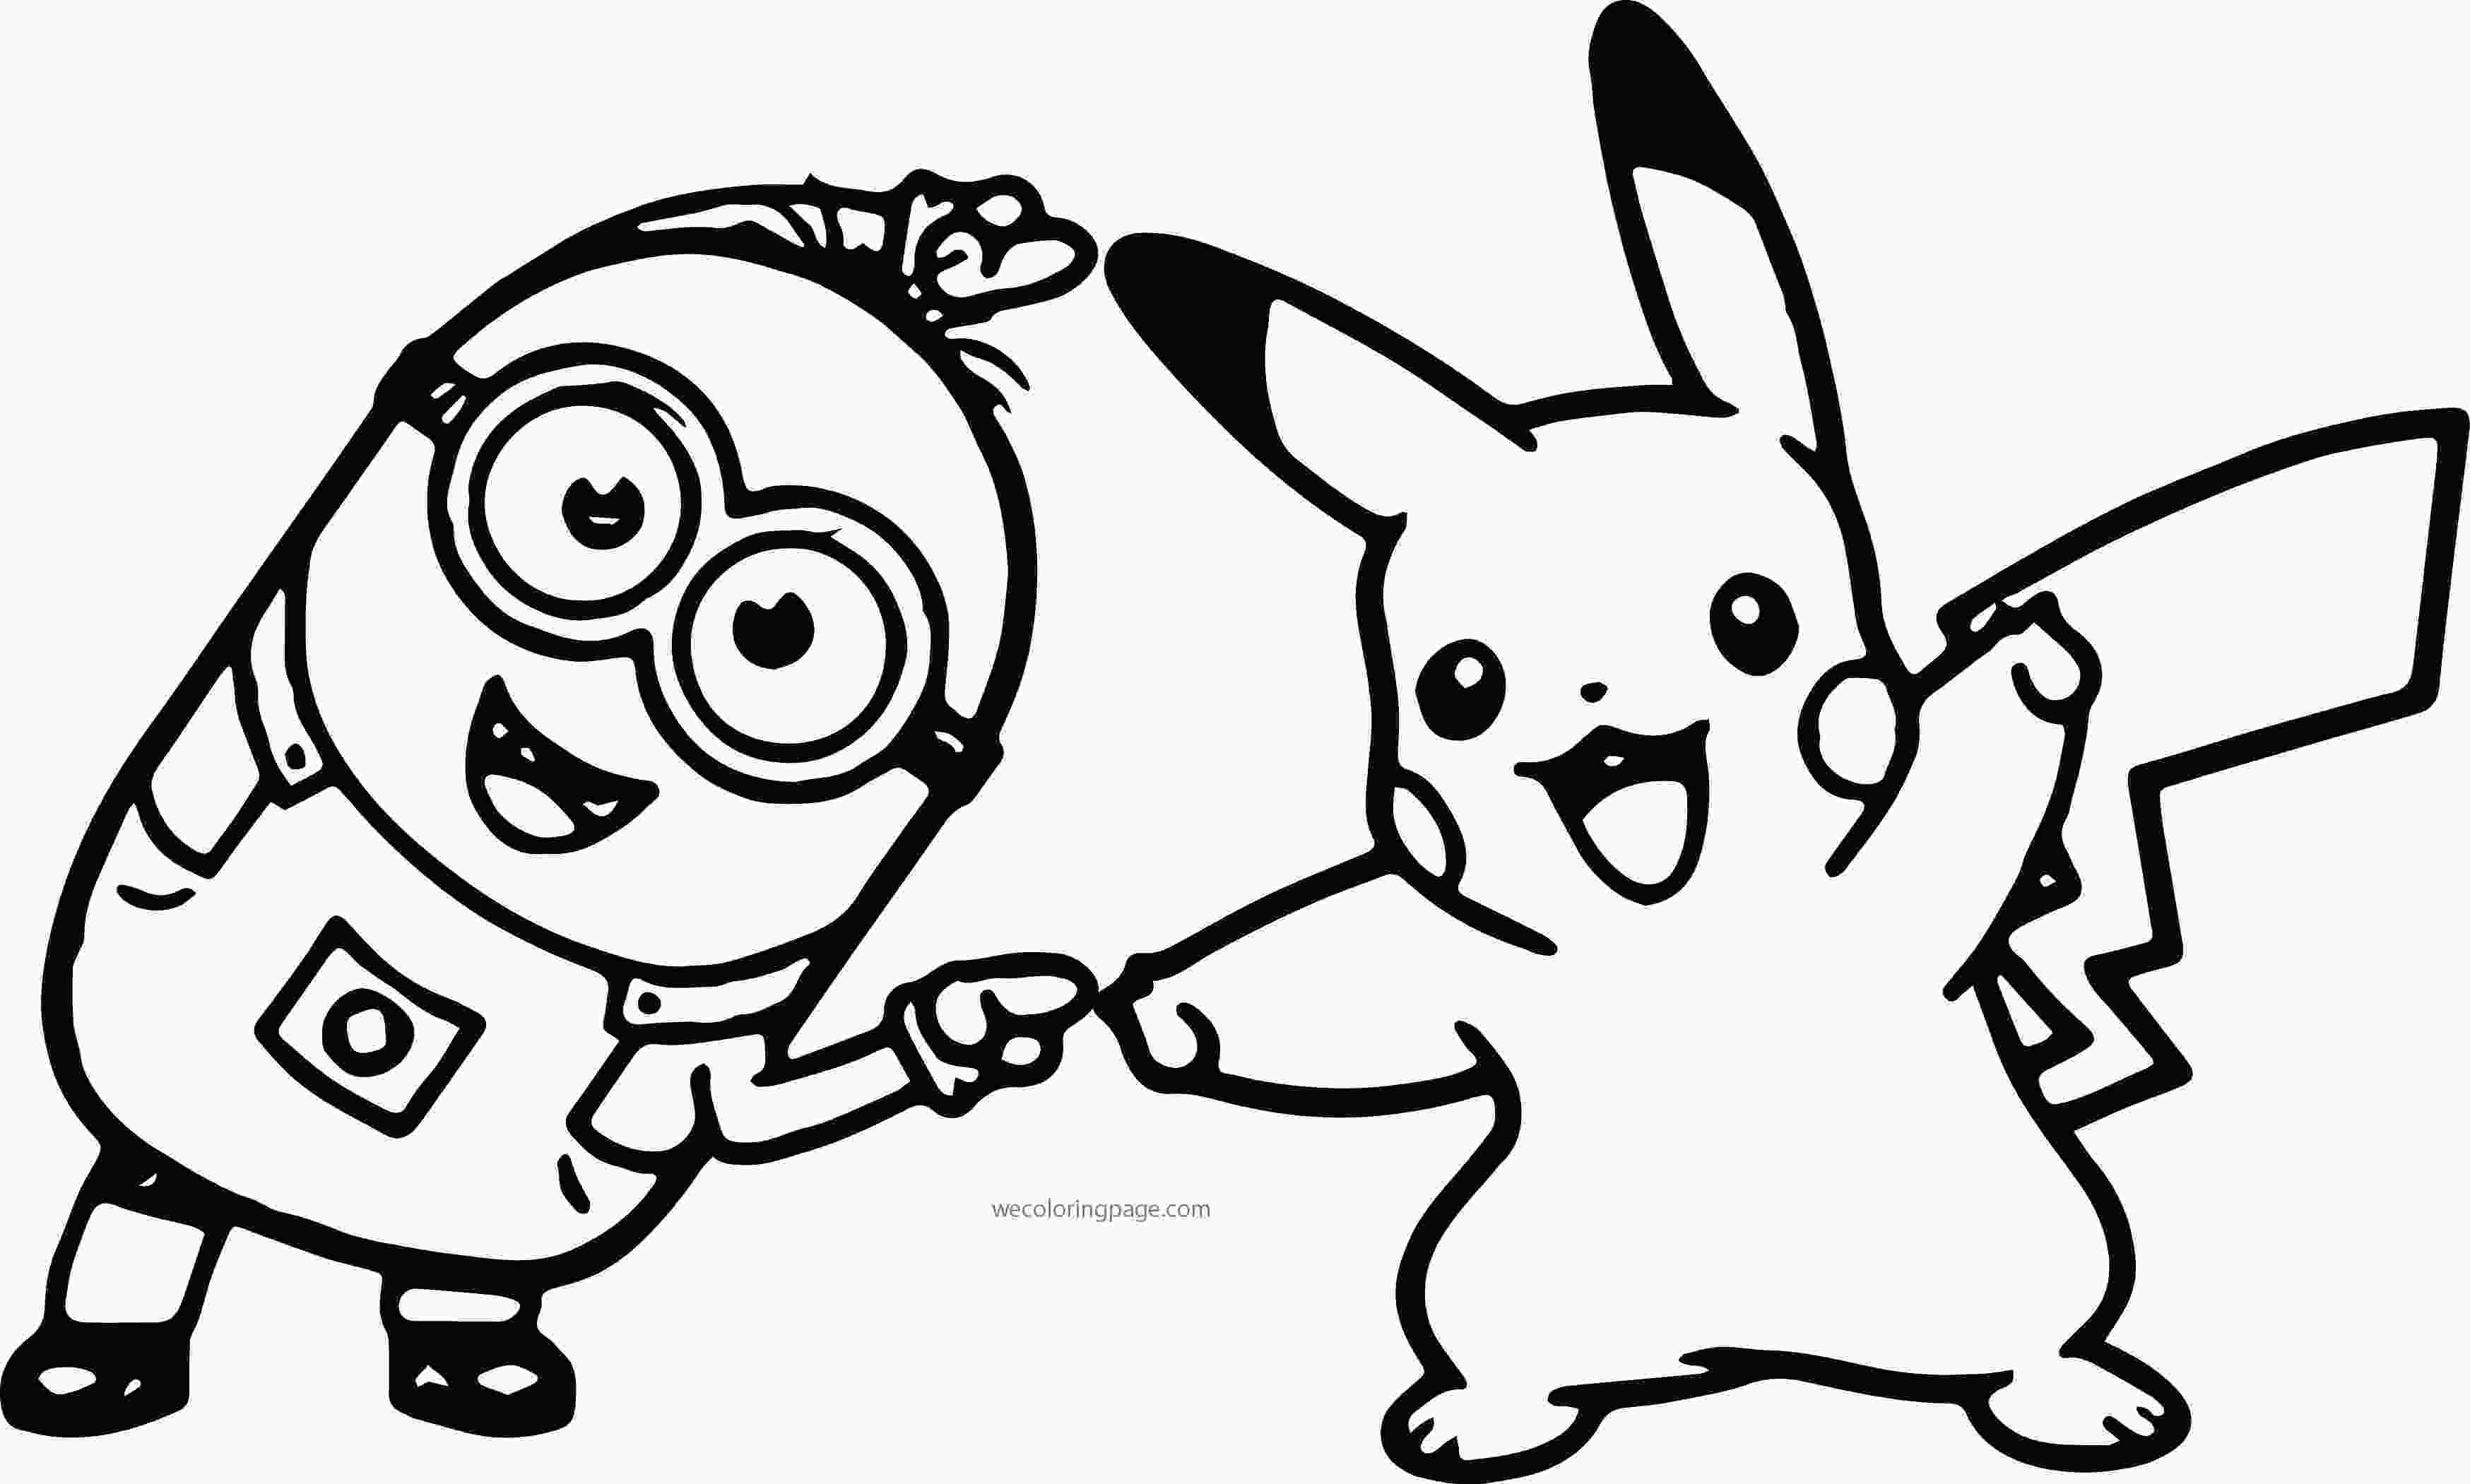 minions for coloring minion pikachu dance pokemon coloring page